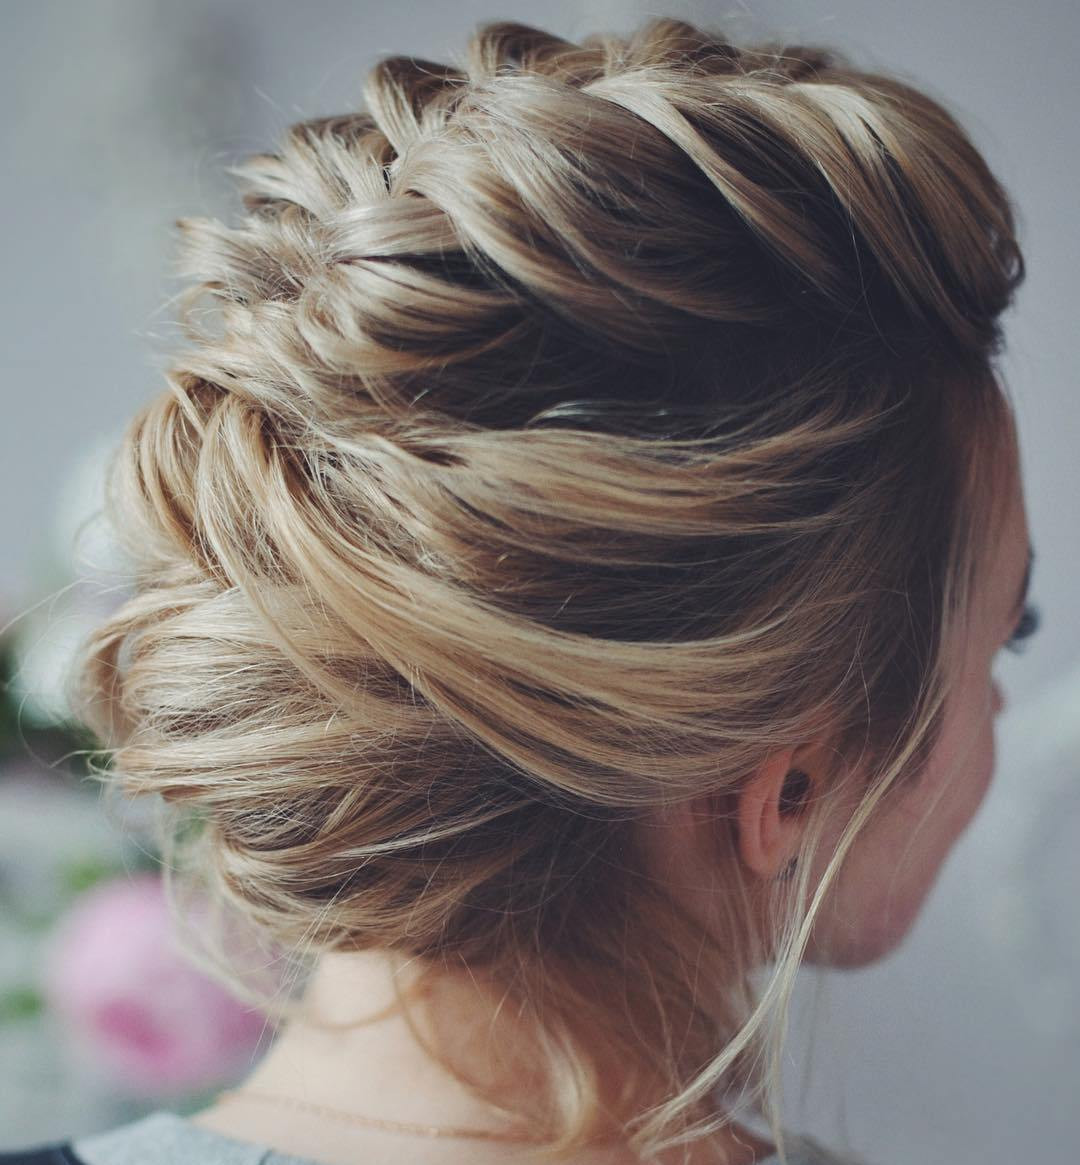 Best ideas about Updo Hairstyles For Short Hair . Save or Pin 50 Hottest Prom Hairstyles for Short Hair Now.